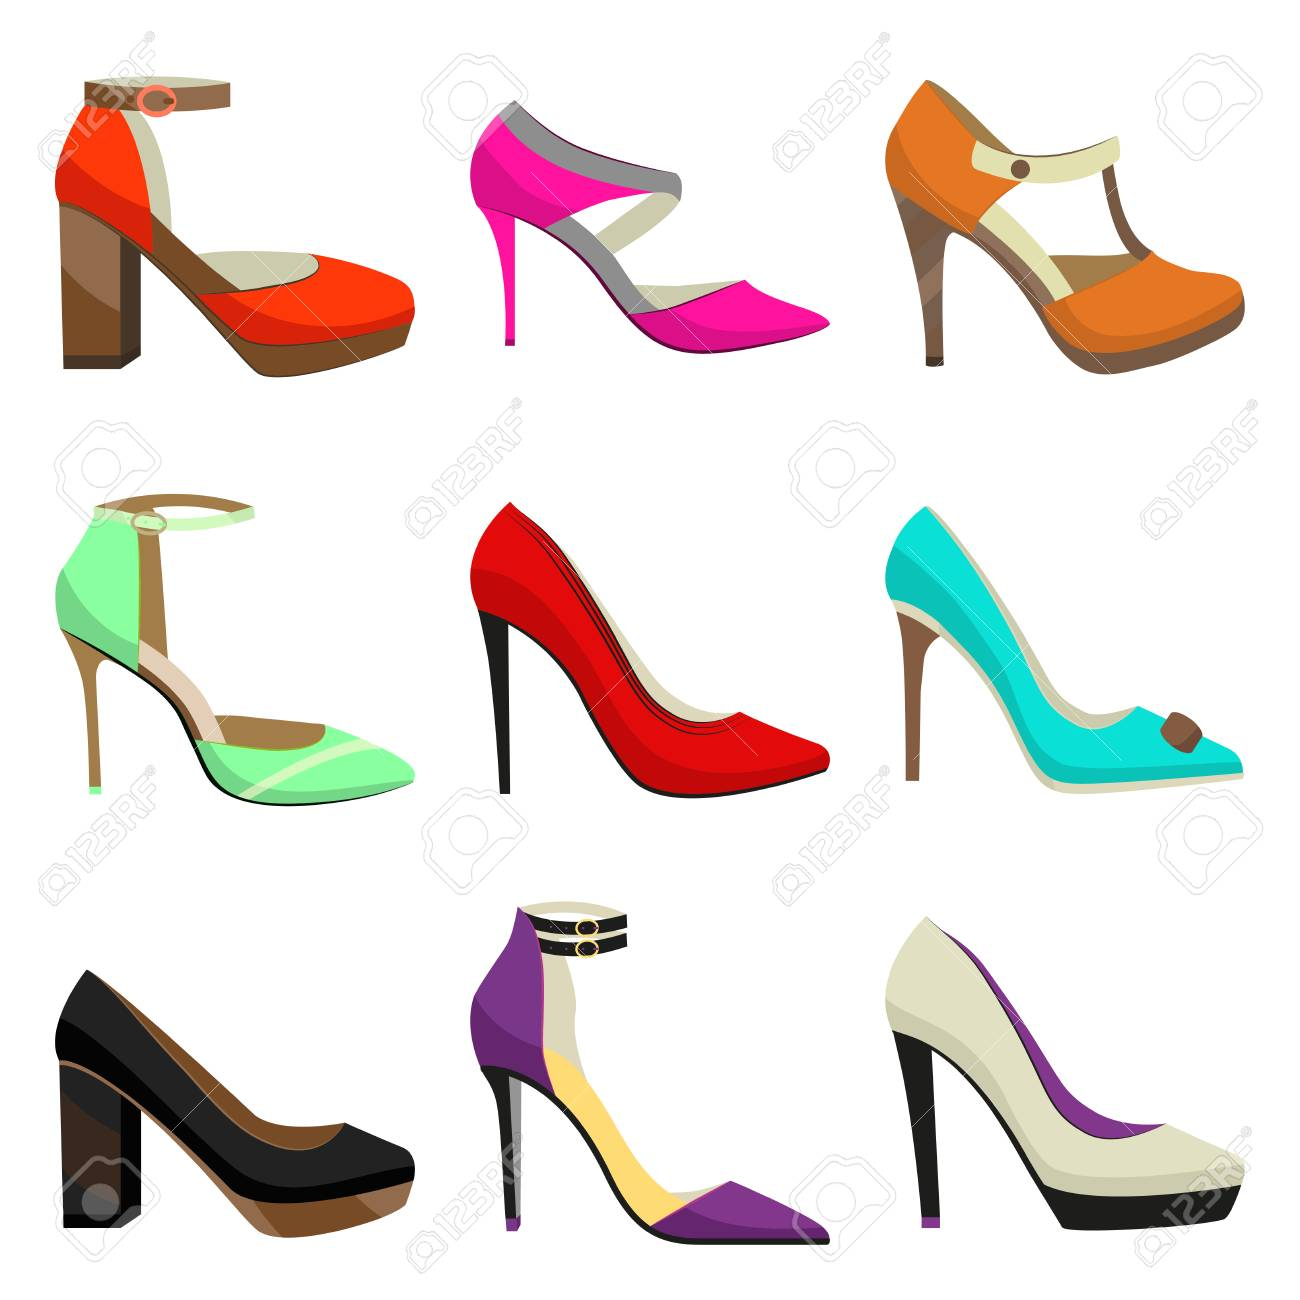 bd59dfe6d1d Woman High Heel Shoes Set. Fahionable Colorful Shoes in Cartoon..